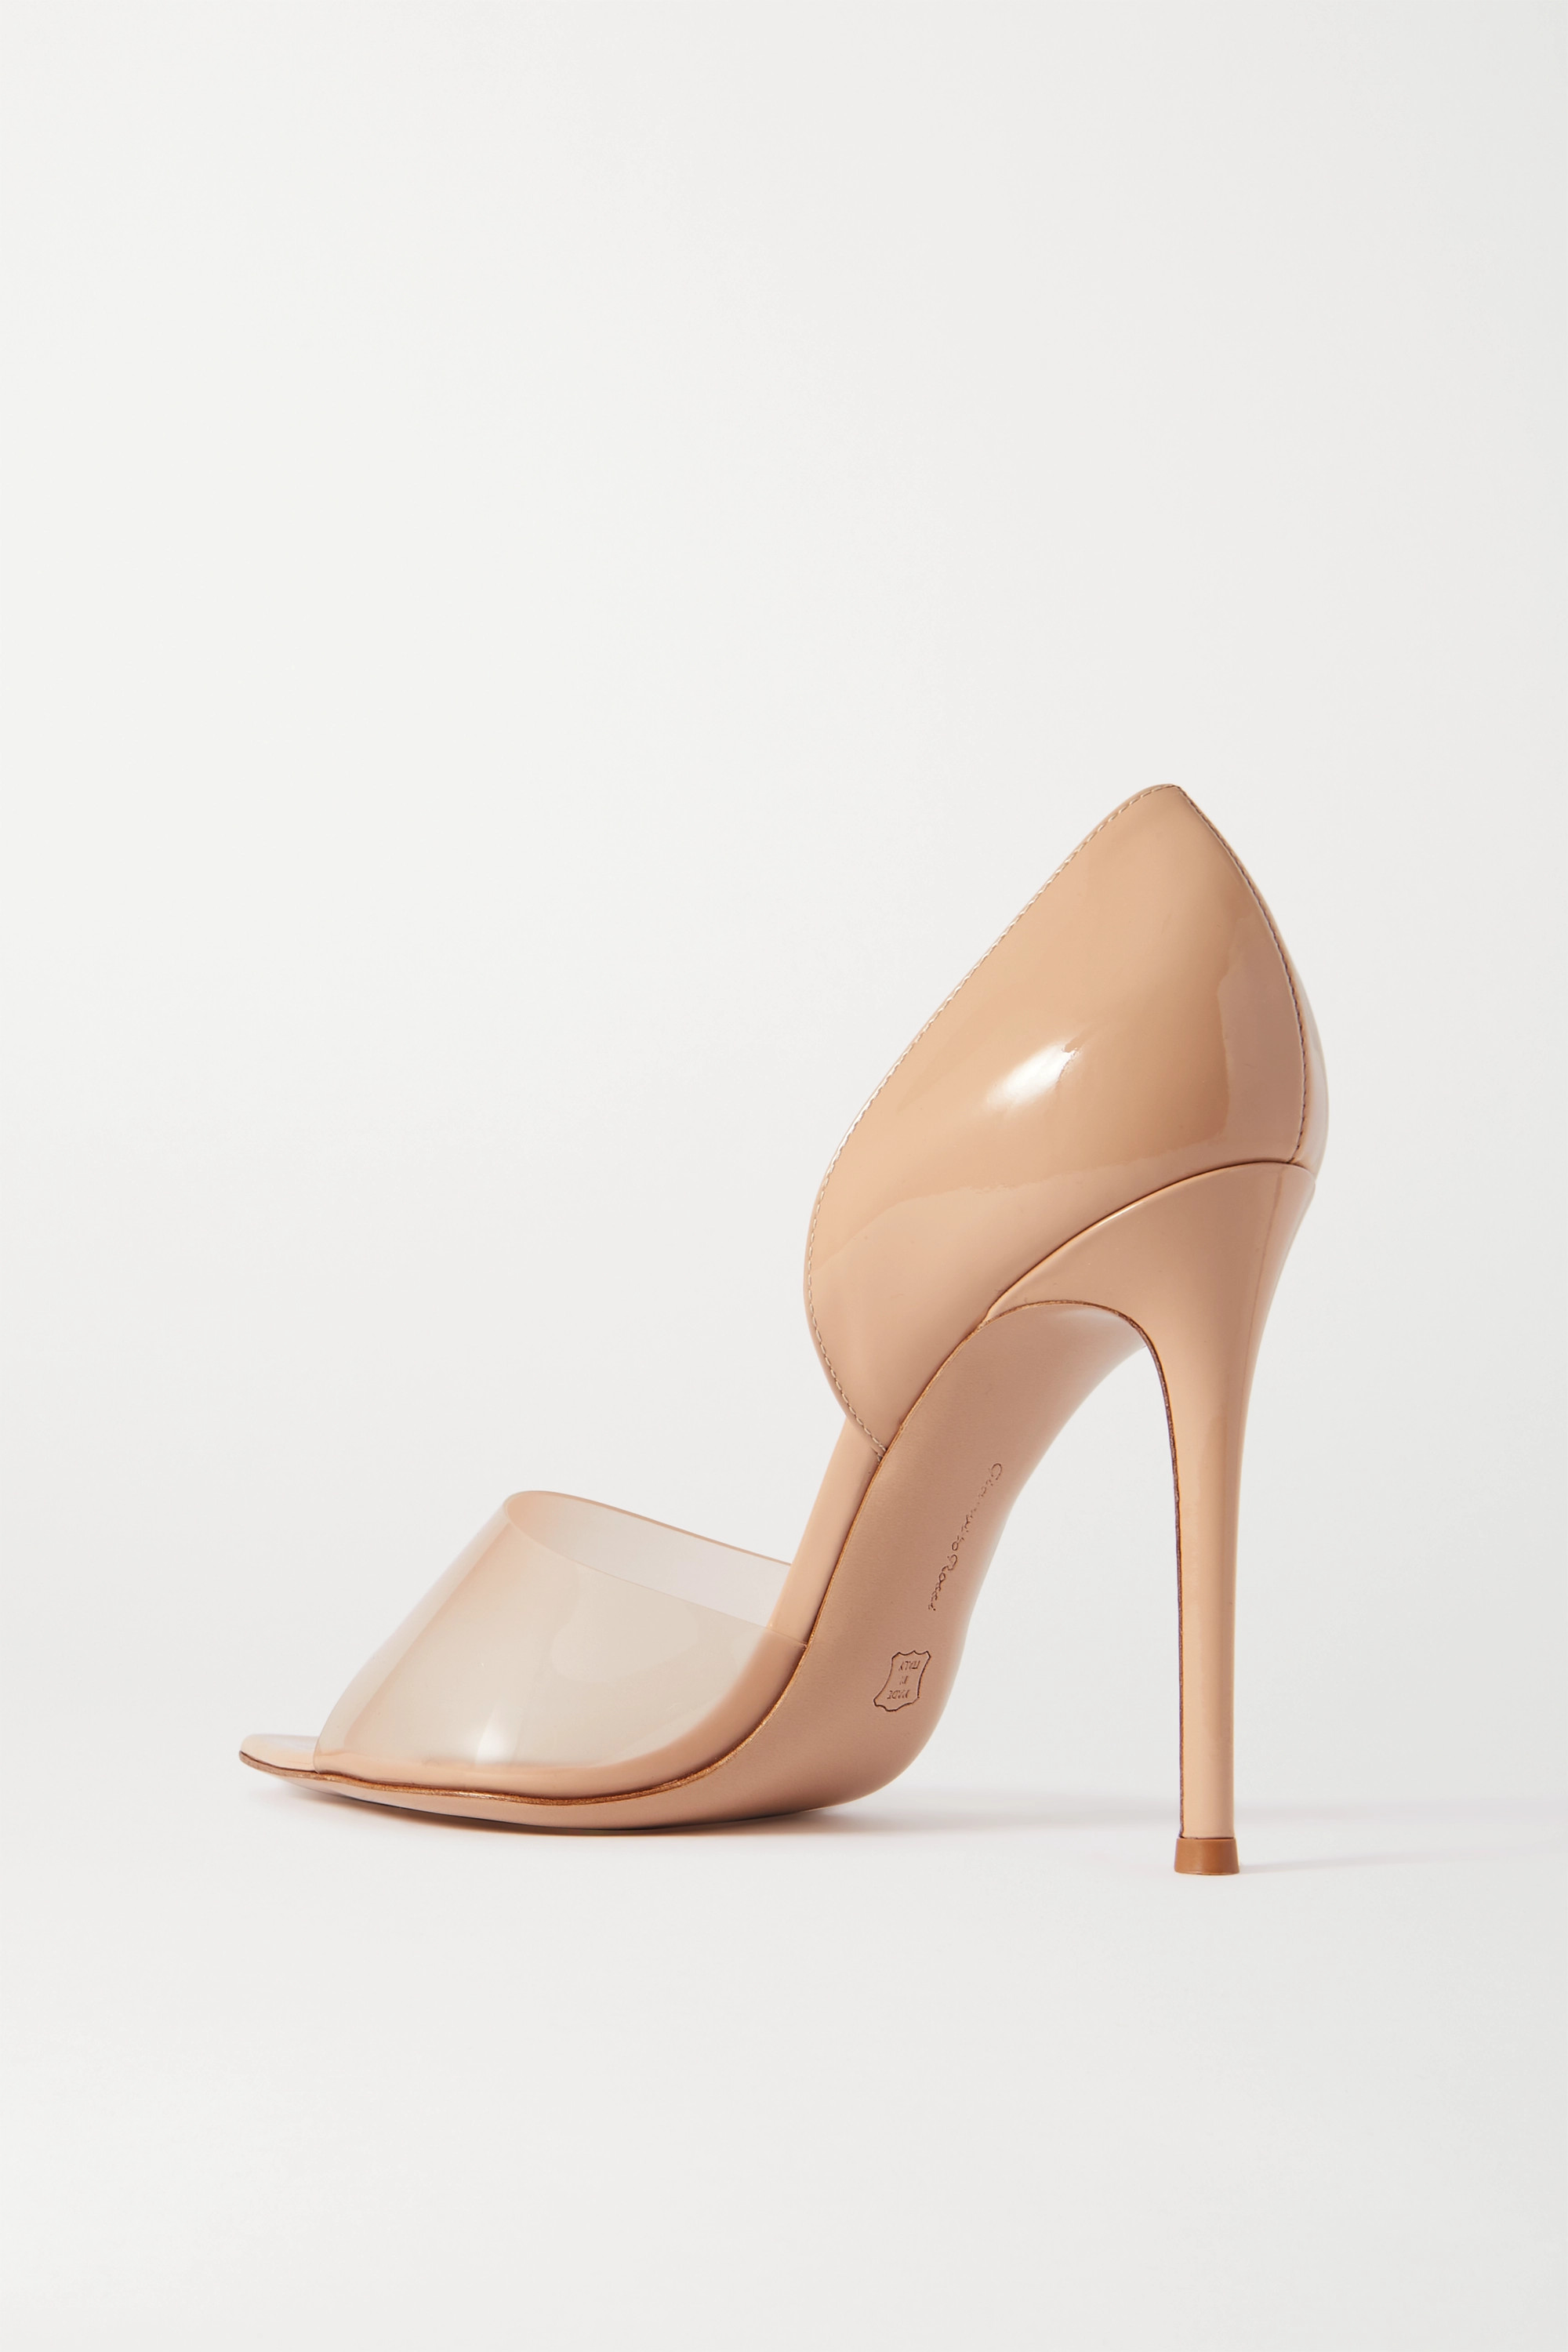 Gianvito Rossi Bree 105 PVC-trimmed patent-leather pumps